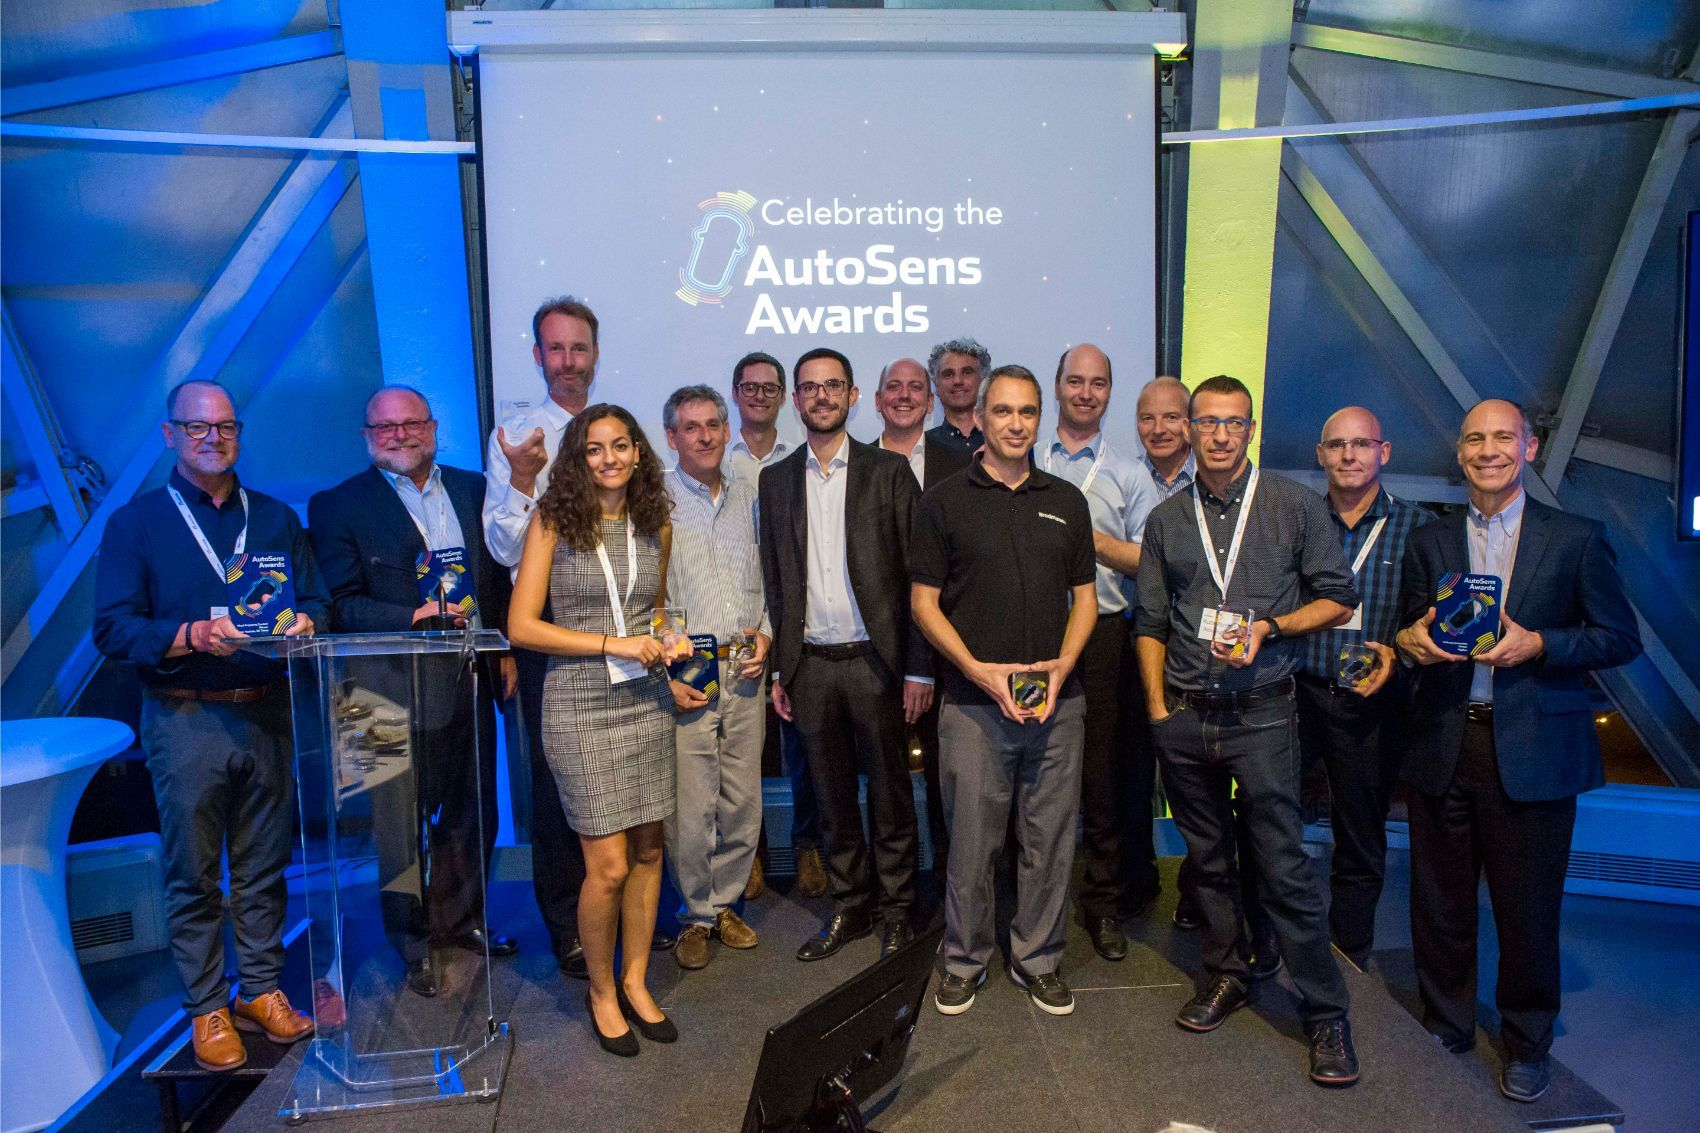 AutoSens Brussels 2019 To Examine All Aspects of Vehicle Perception Tech & Autonomous Driving